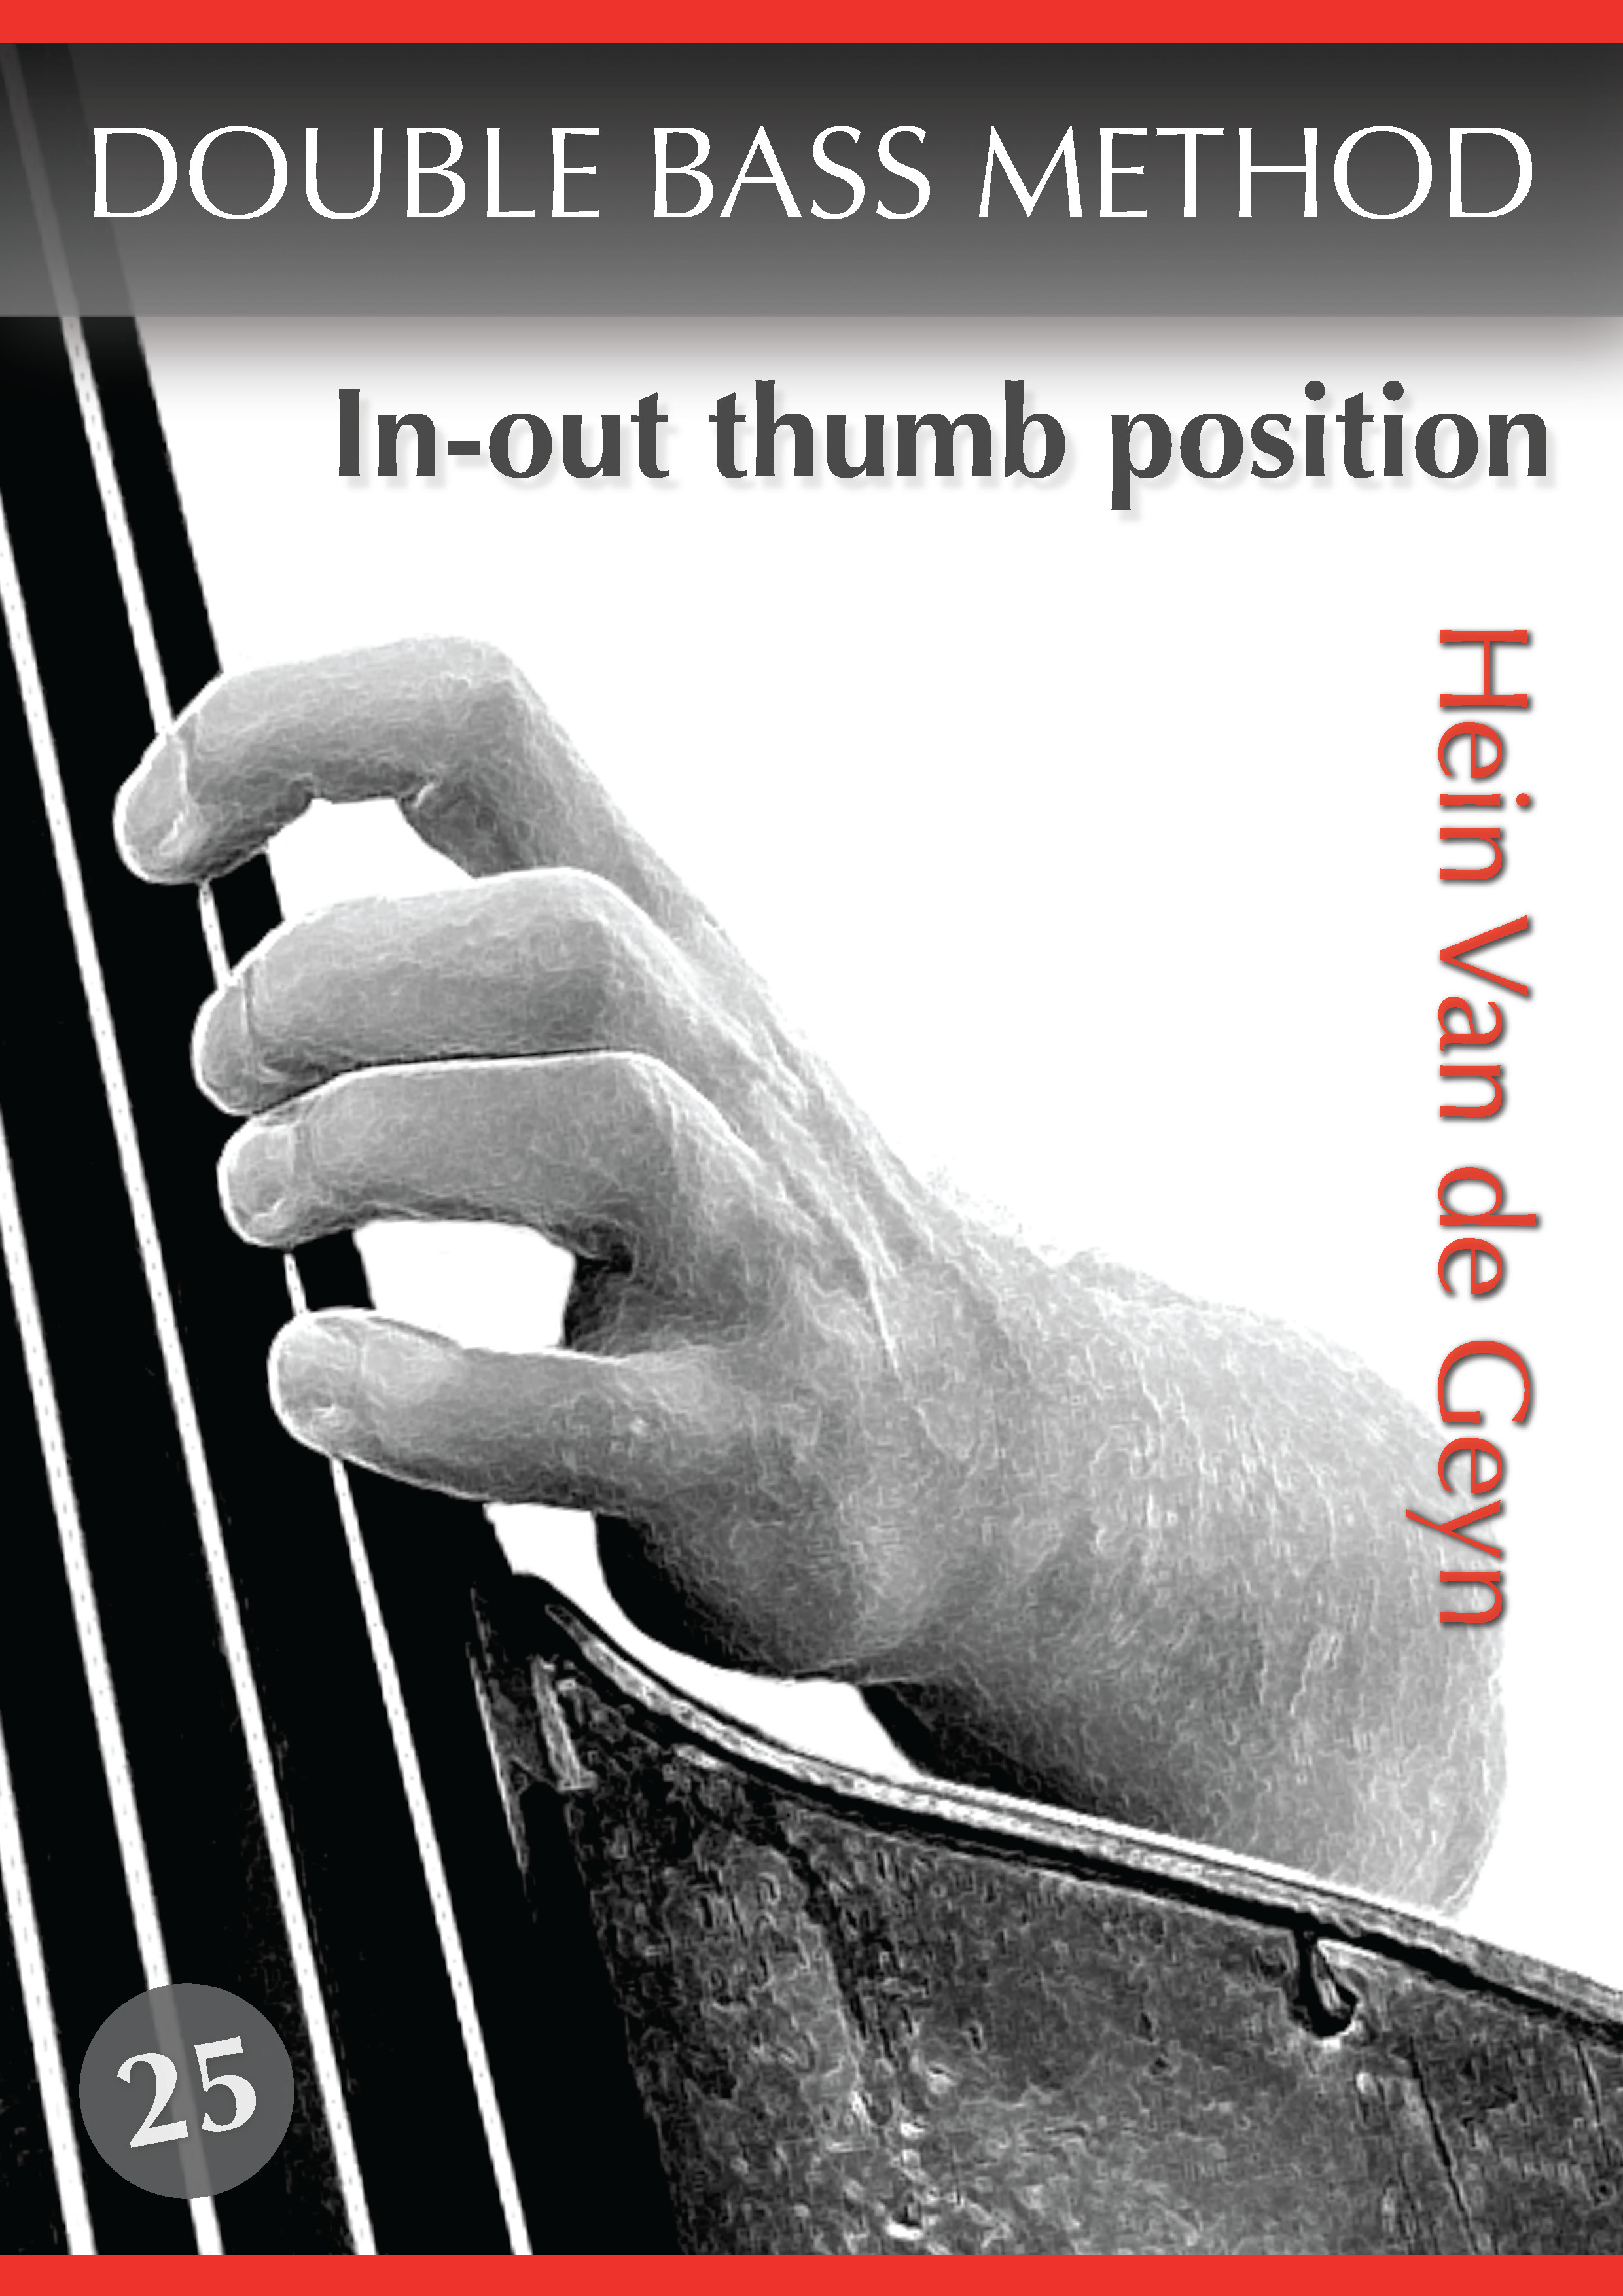 In-out thumb position double bass